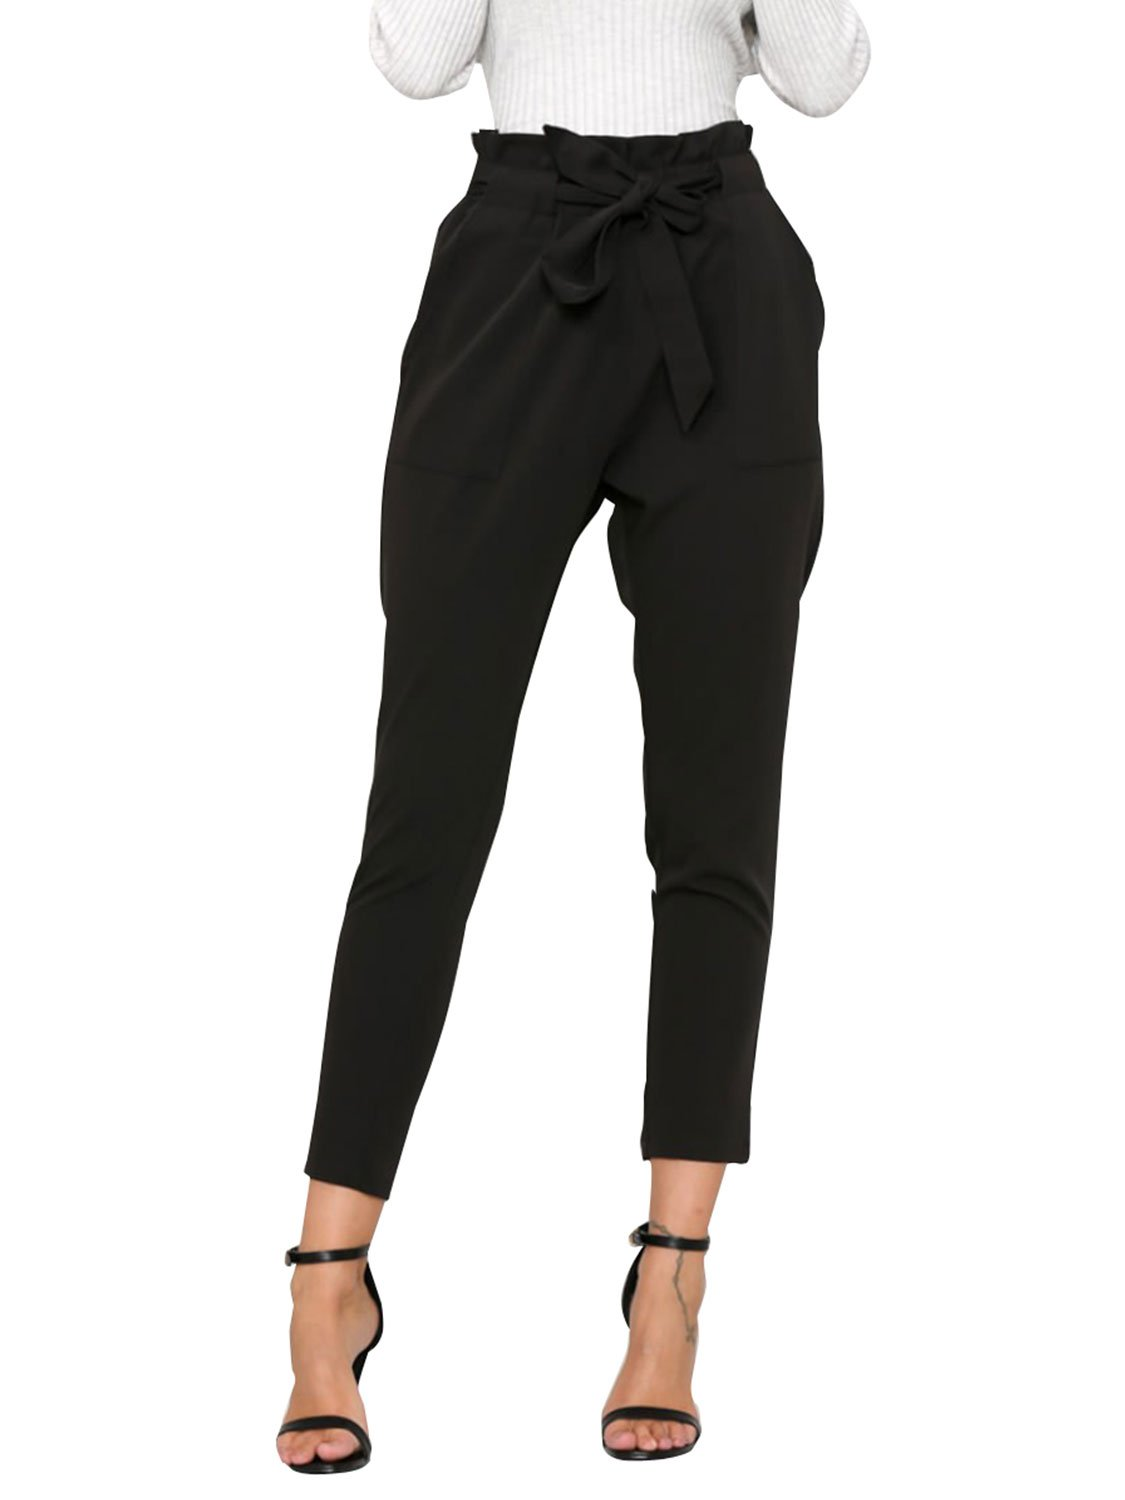 Simplee Apparel Women's Slim Straight Leg Stretch Casual Pants with Pockets, Black, 1/11, X-Large